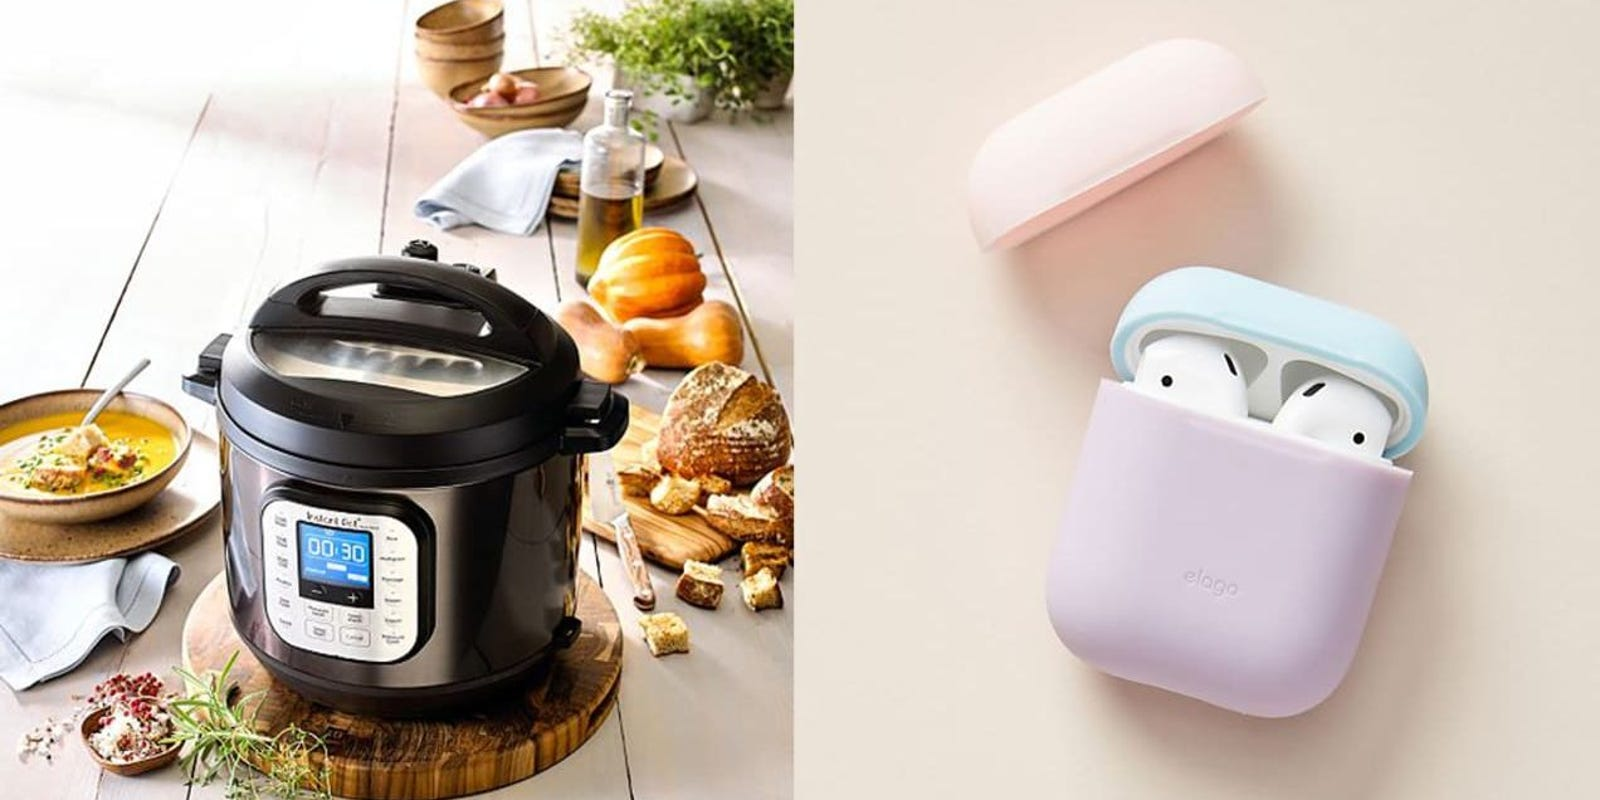 The 25 most popular things our readers bought in January